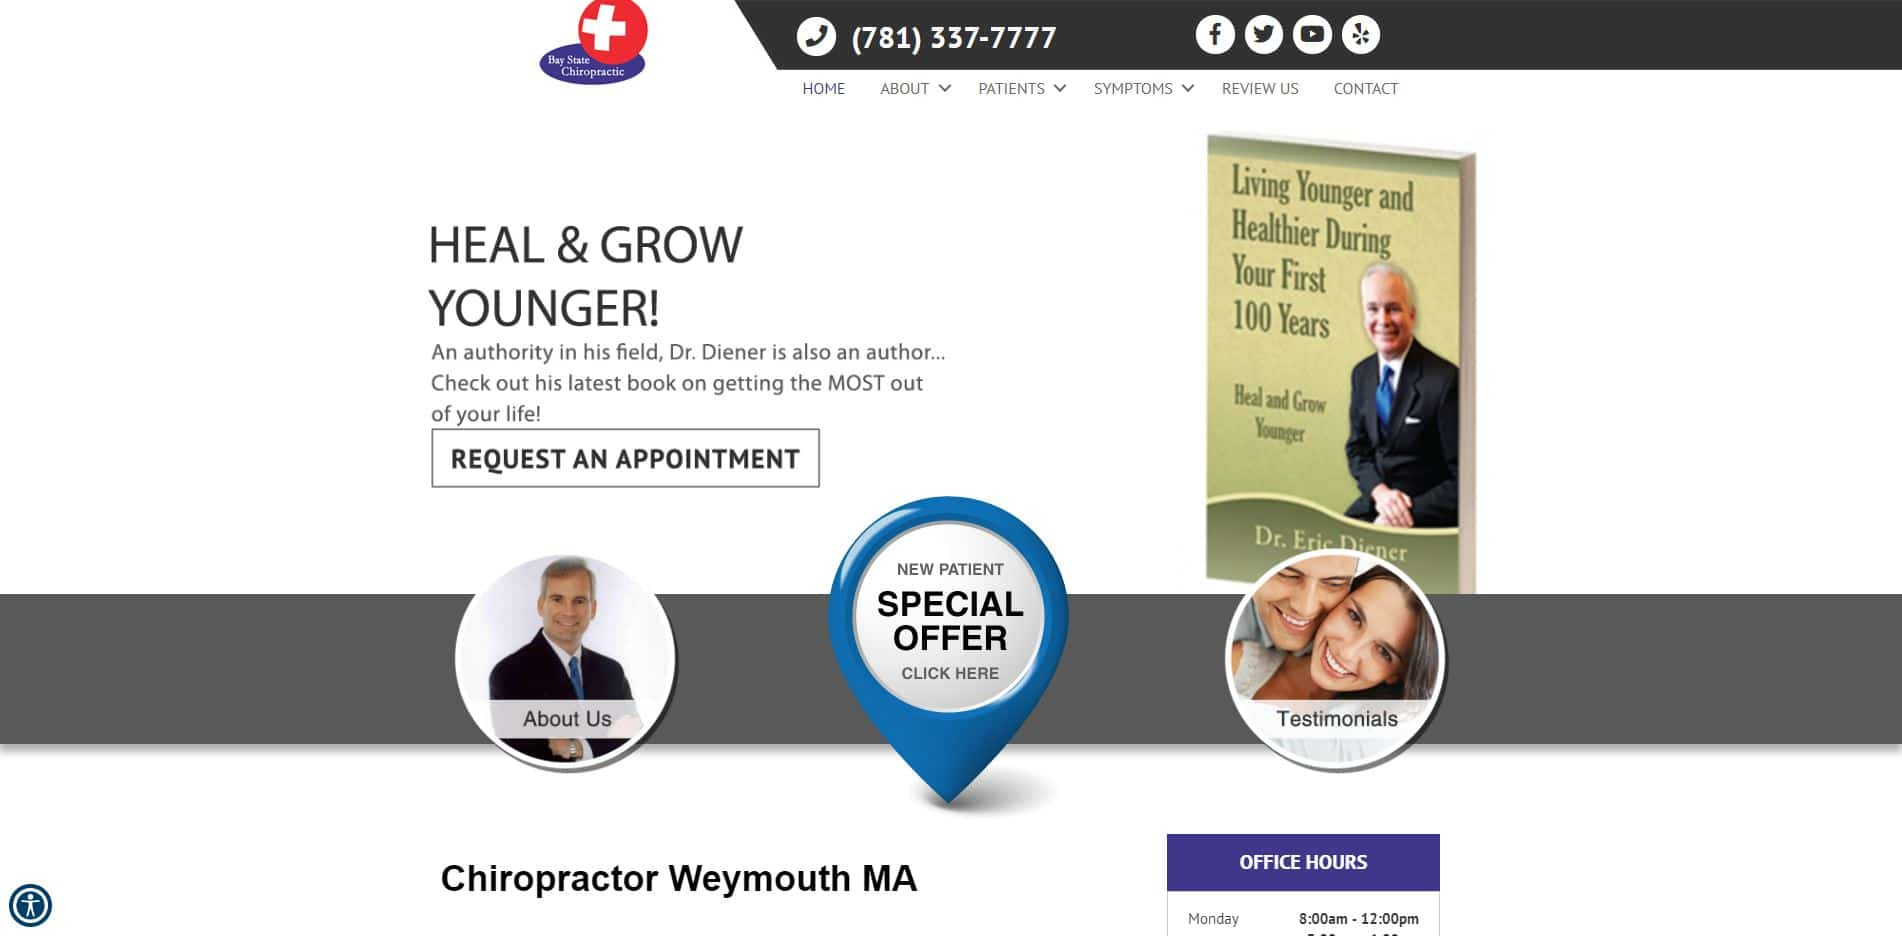 Chiropractor in Weymouth